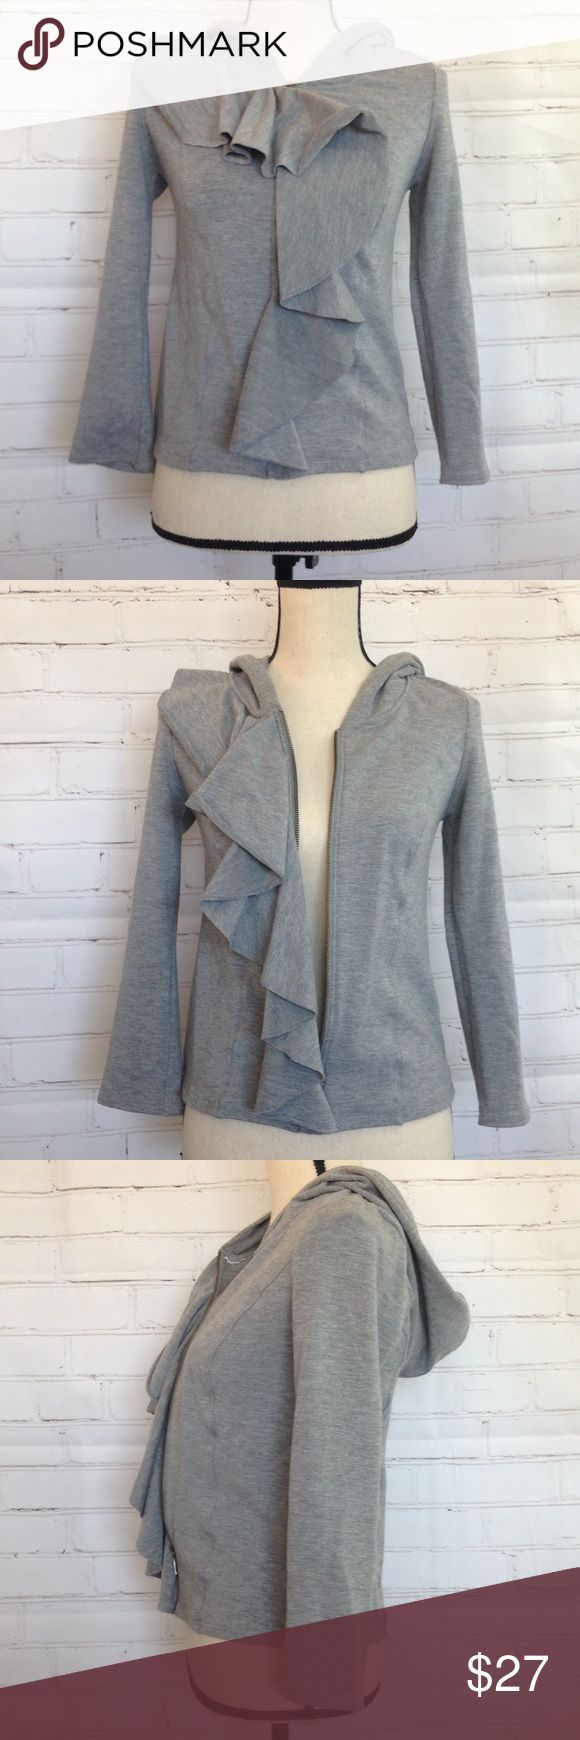 "Anthropologie Sunday Monday Tuesday Gray Jacket M Cute jacket so cute with the side ruffle Sweats Hoodie Top. Brand is Sunday Monday Tuesday Wednesday Thursday Friday Saturday. There is some pilling as jacket has been worn. Approximate measurements chest: 30.5"" length: 20.5 Anthropologie Tops Sweatshirts & Hoodies"